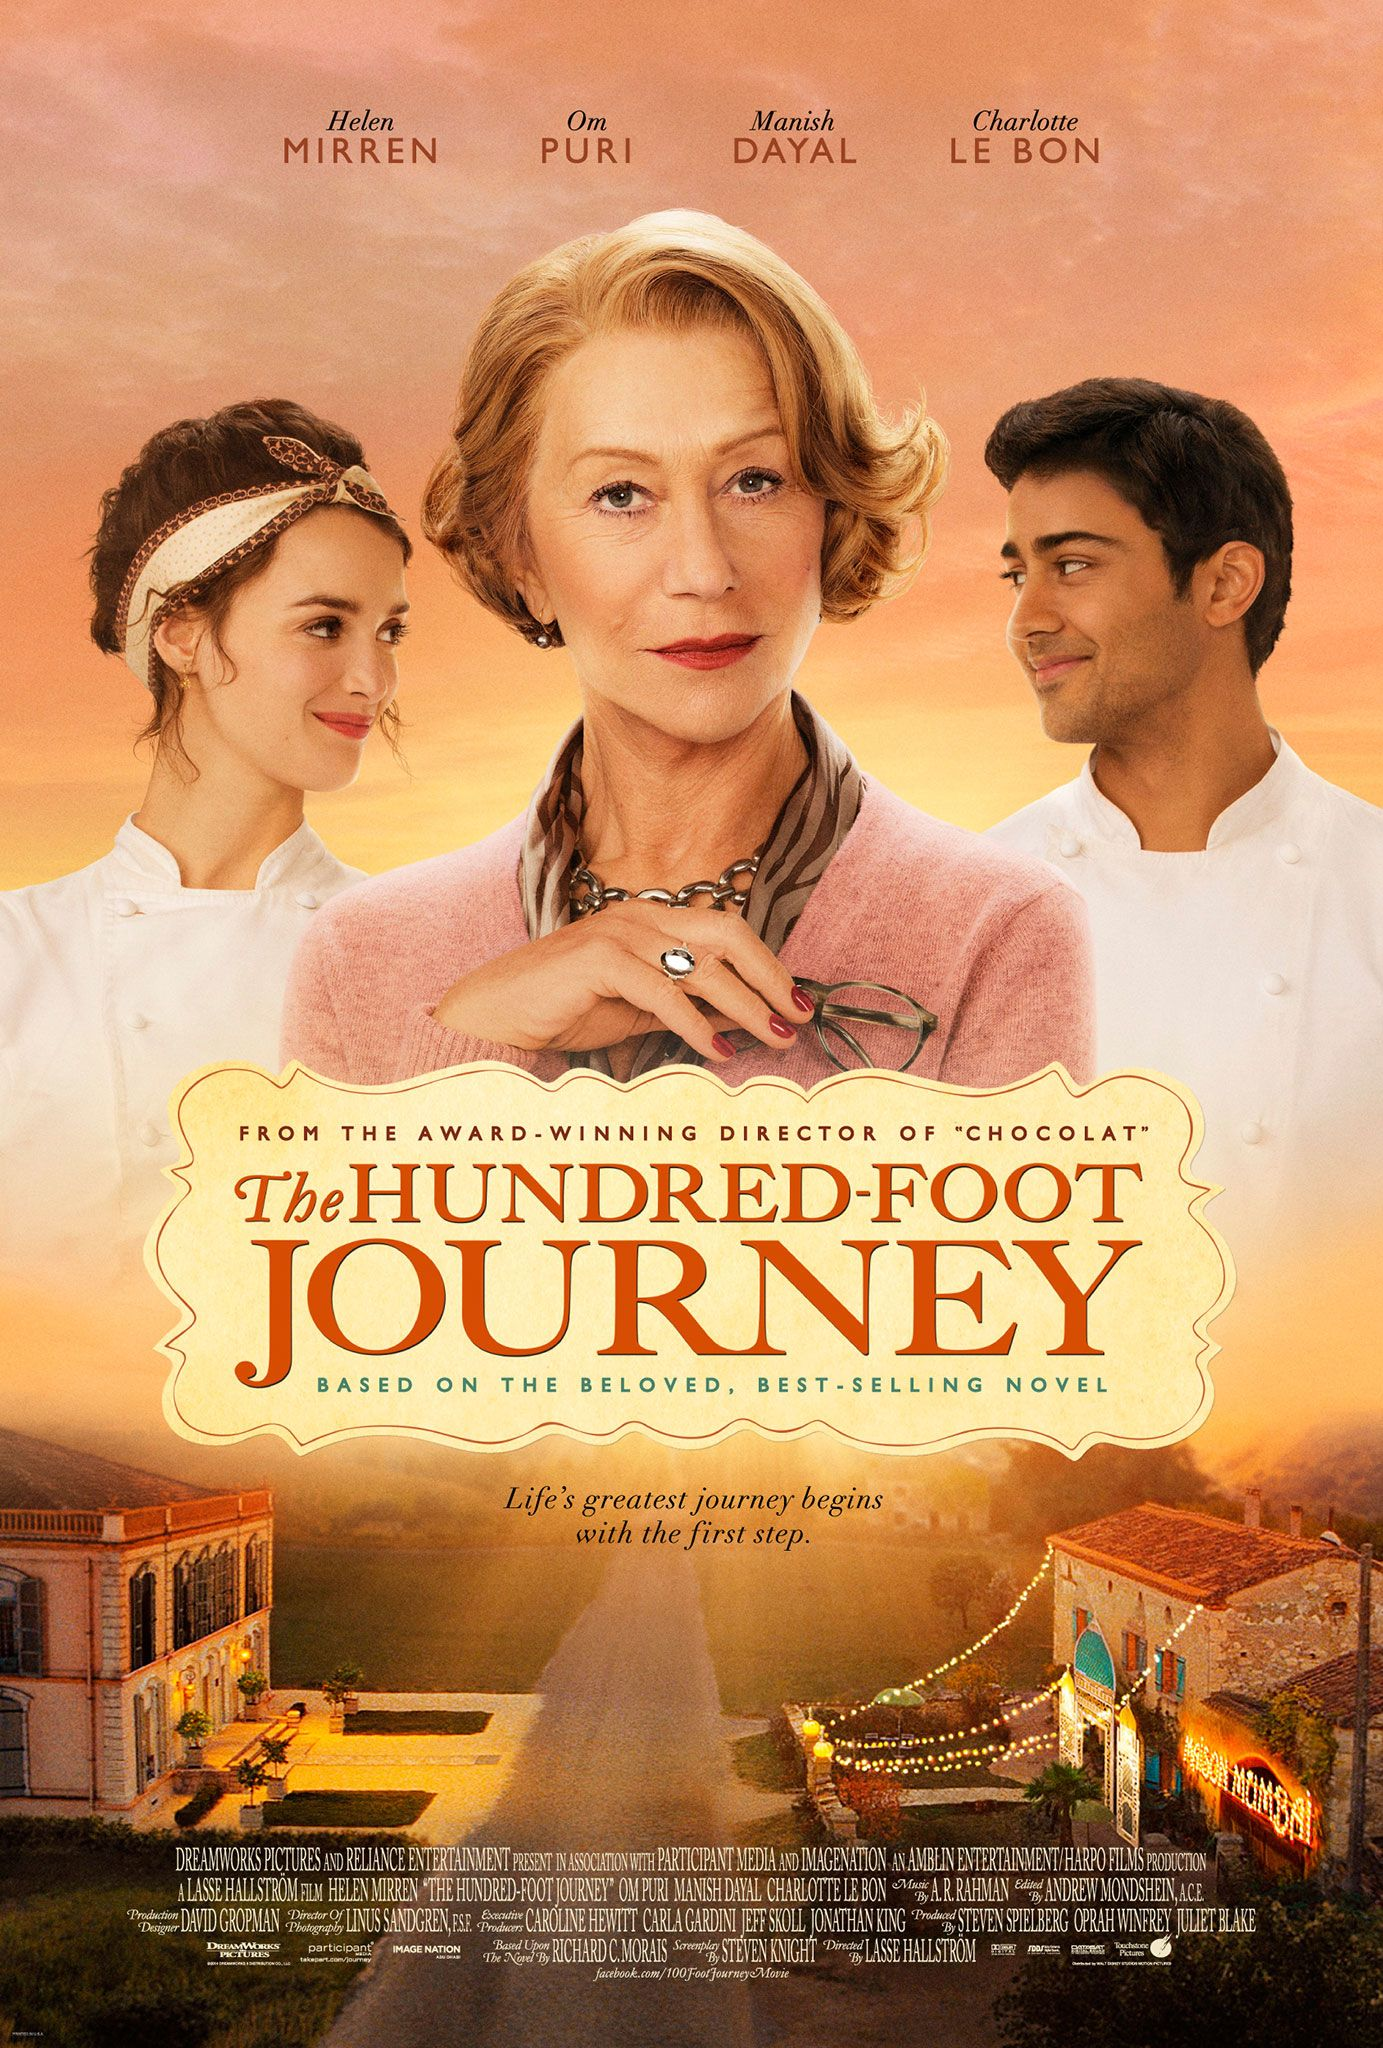 The 100-foot Journey